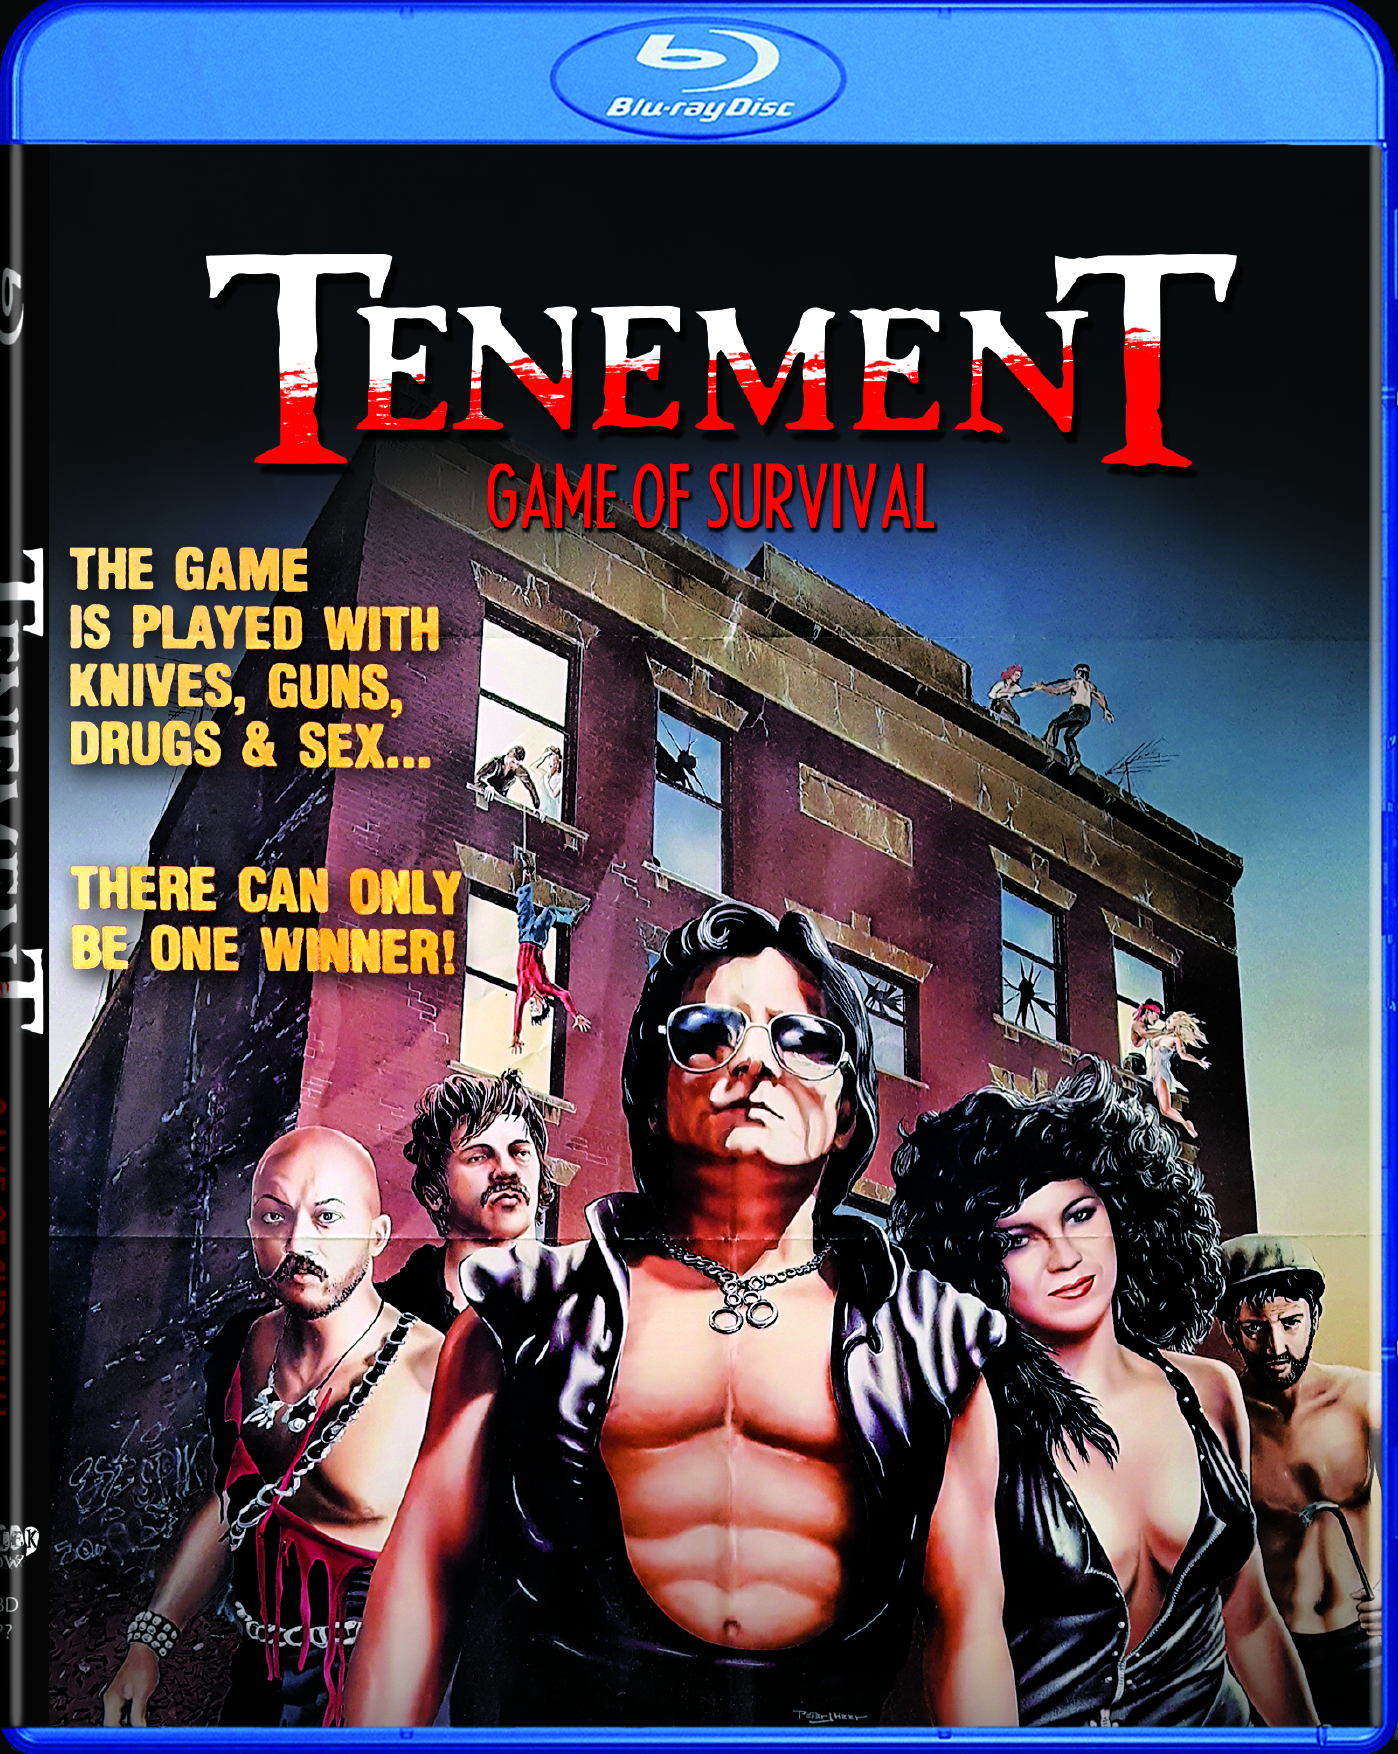 Tenement Game of Survival Blu-ray 631595170481